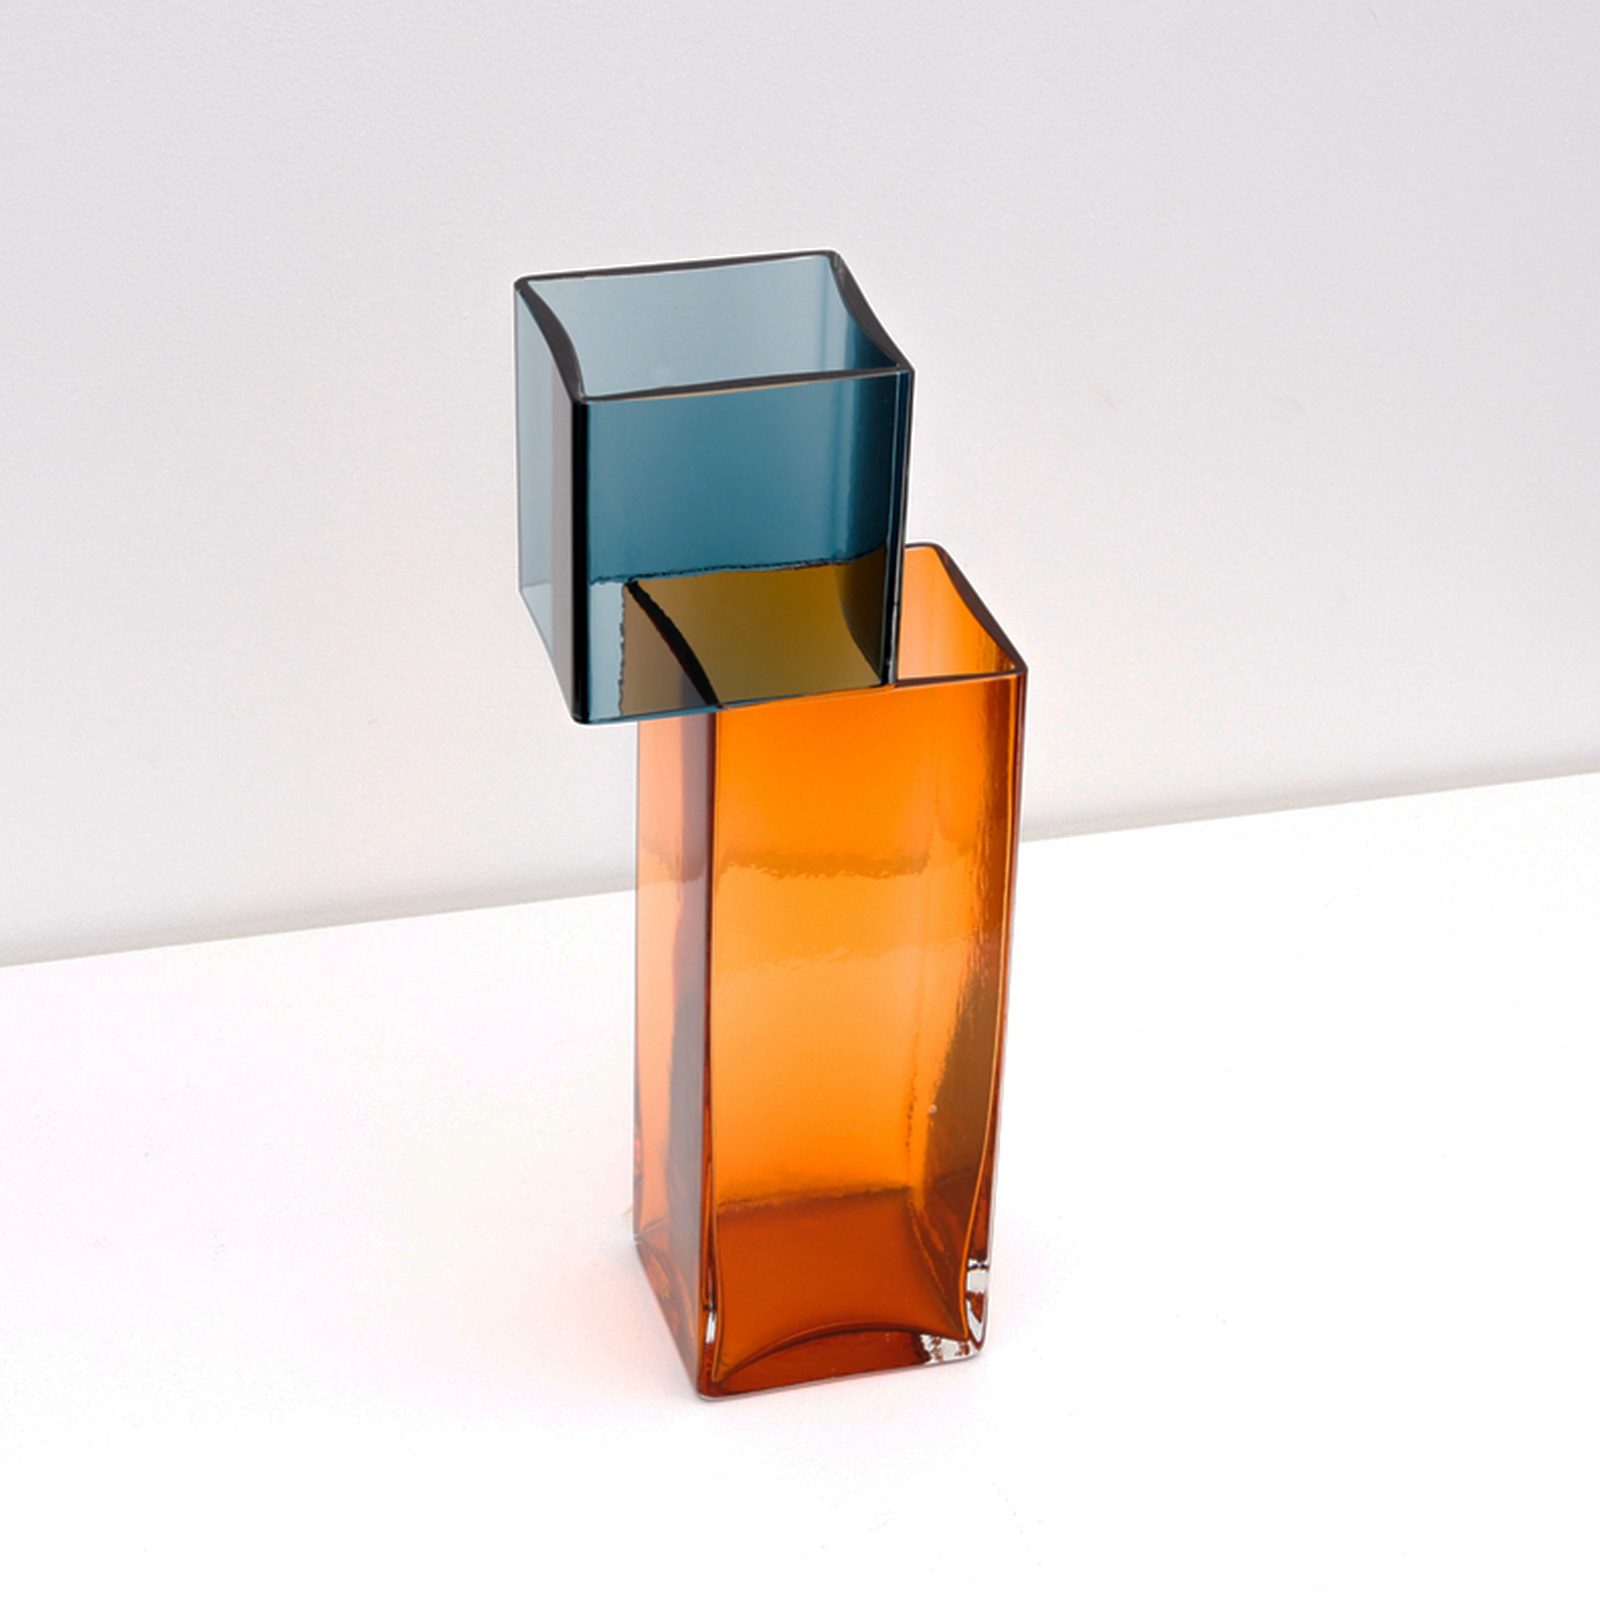 Graft Vase D In Ocean And Amber Hand Blown Glass By Liam Fleming 2